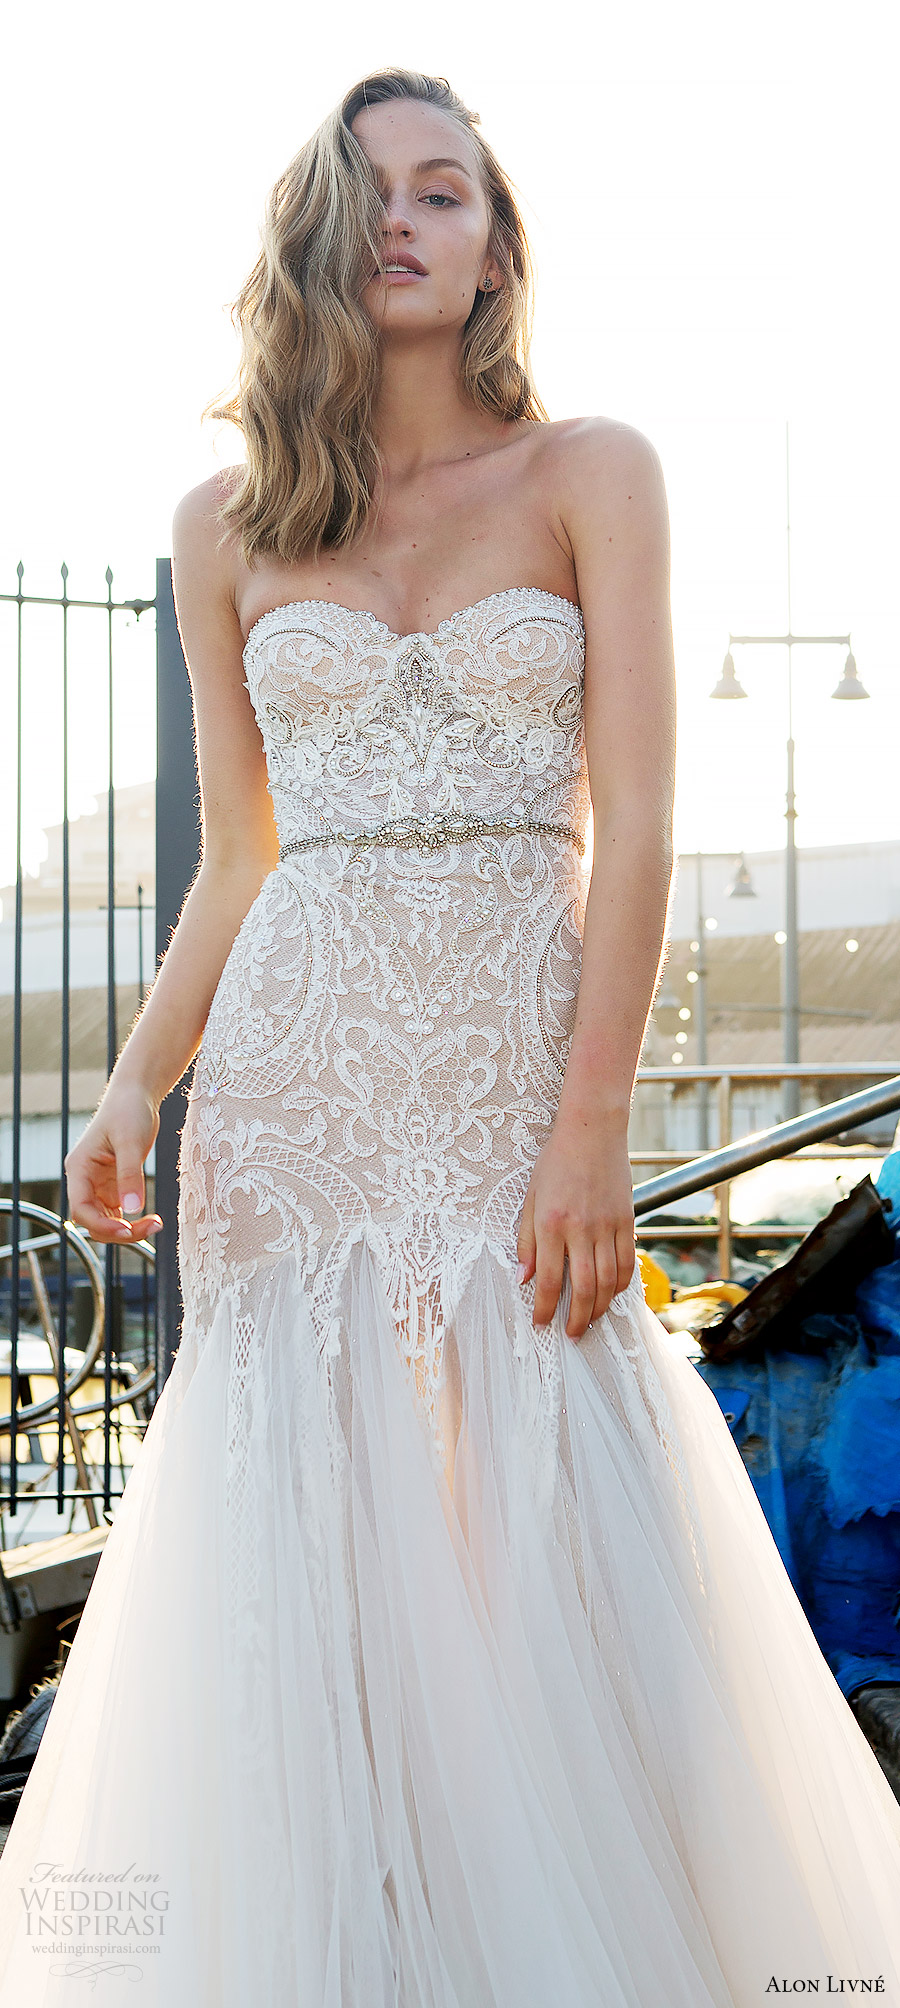 alon livne white pre 2018 bridal strapless sweetheart lace bodice fit flare wedding dress (helen) fv glam